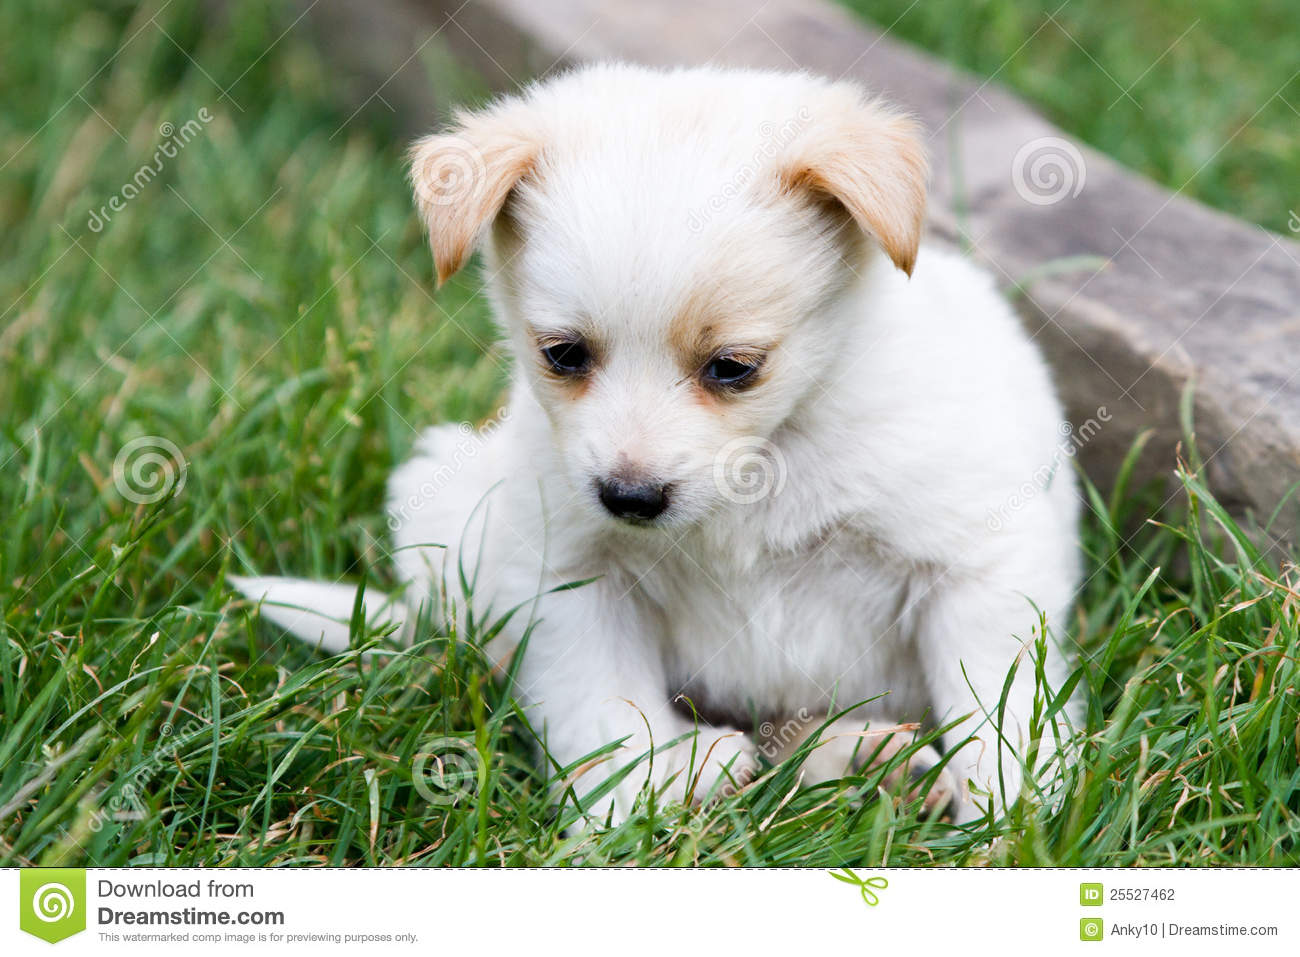 Cute White Puppy In The Grass Stock Image